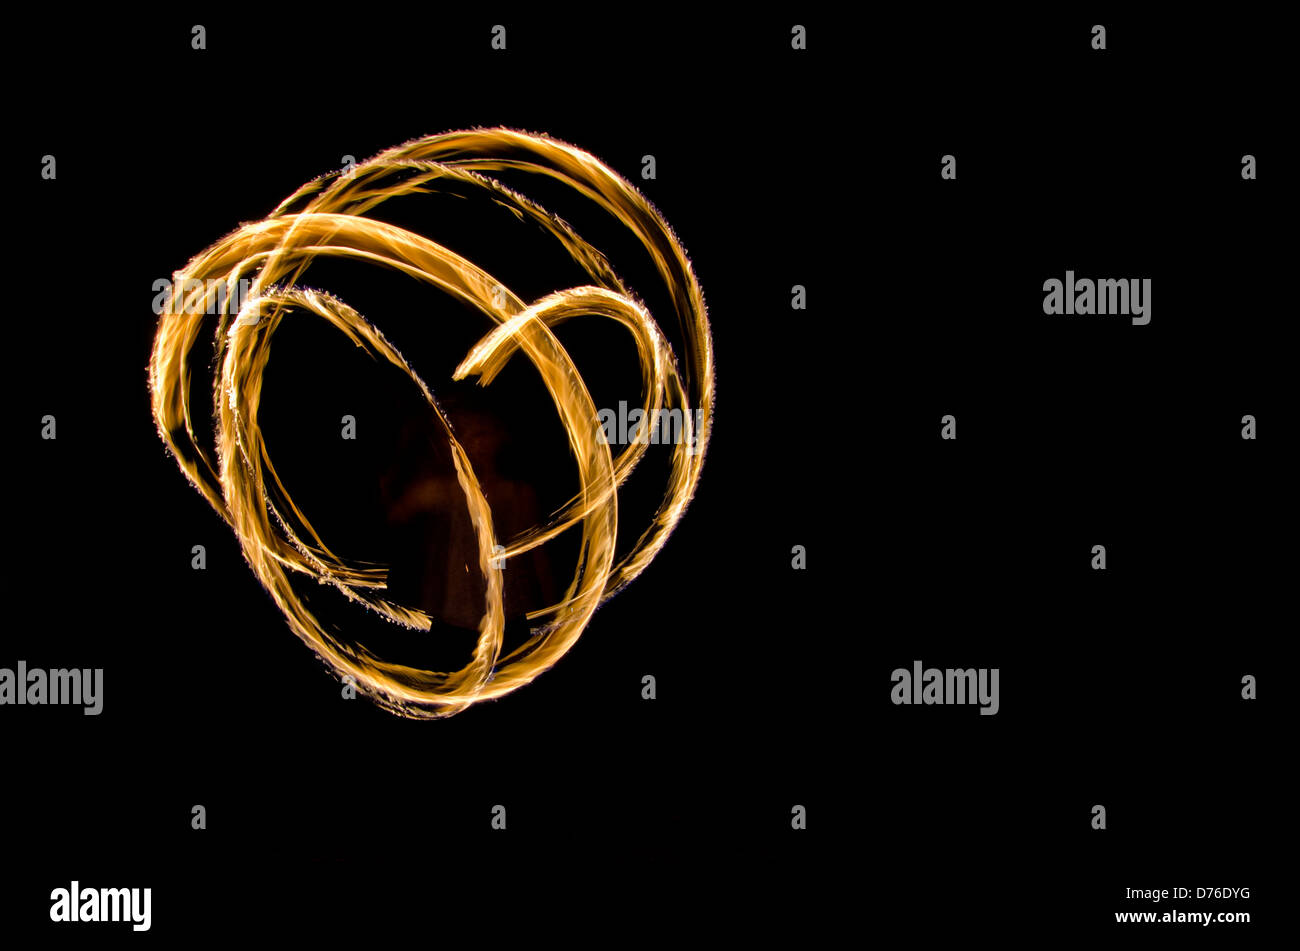 glowing spark spirals - Stock Image